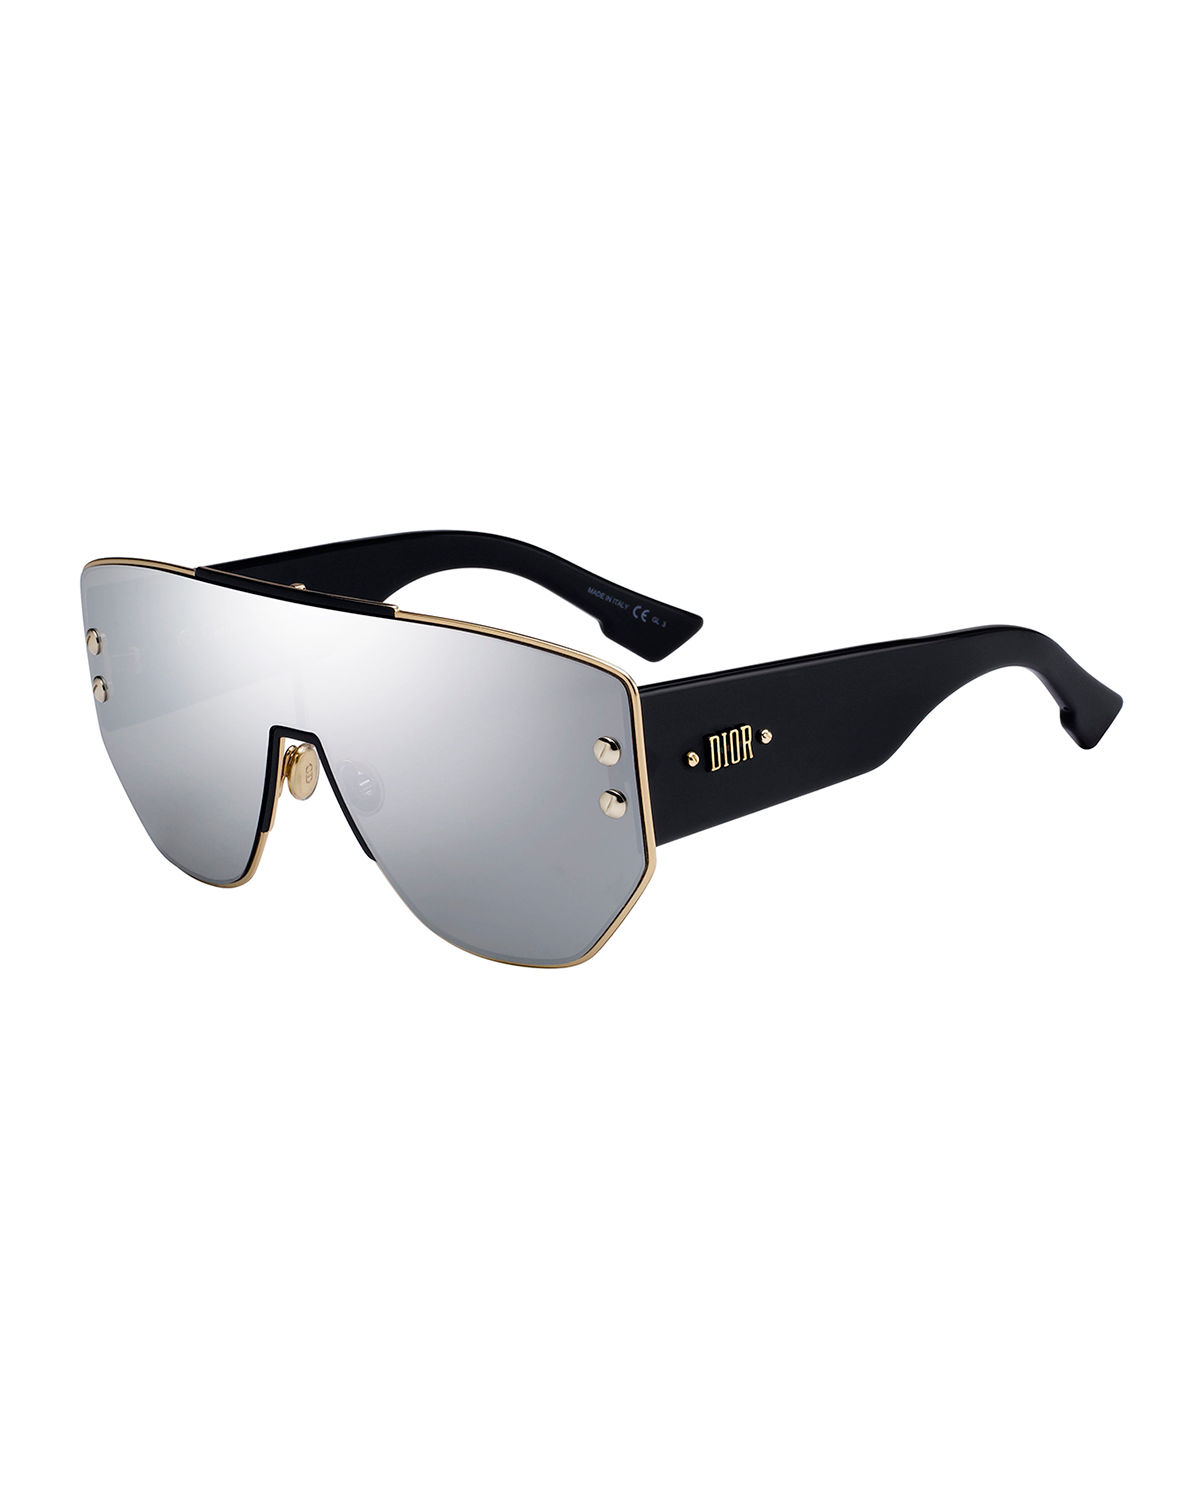 e6b351b9e78a Dior Addict1 Mirrored Shield Sunglasses